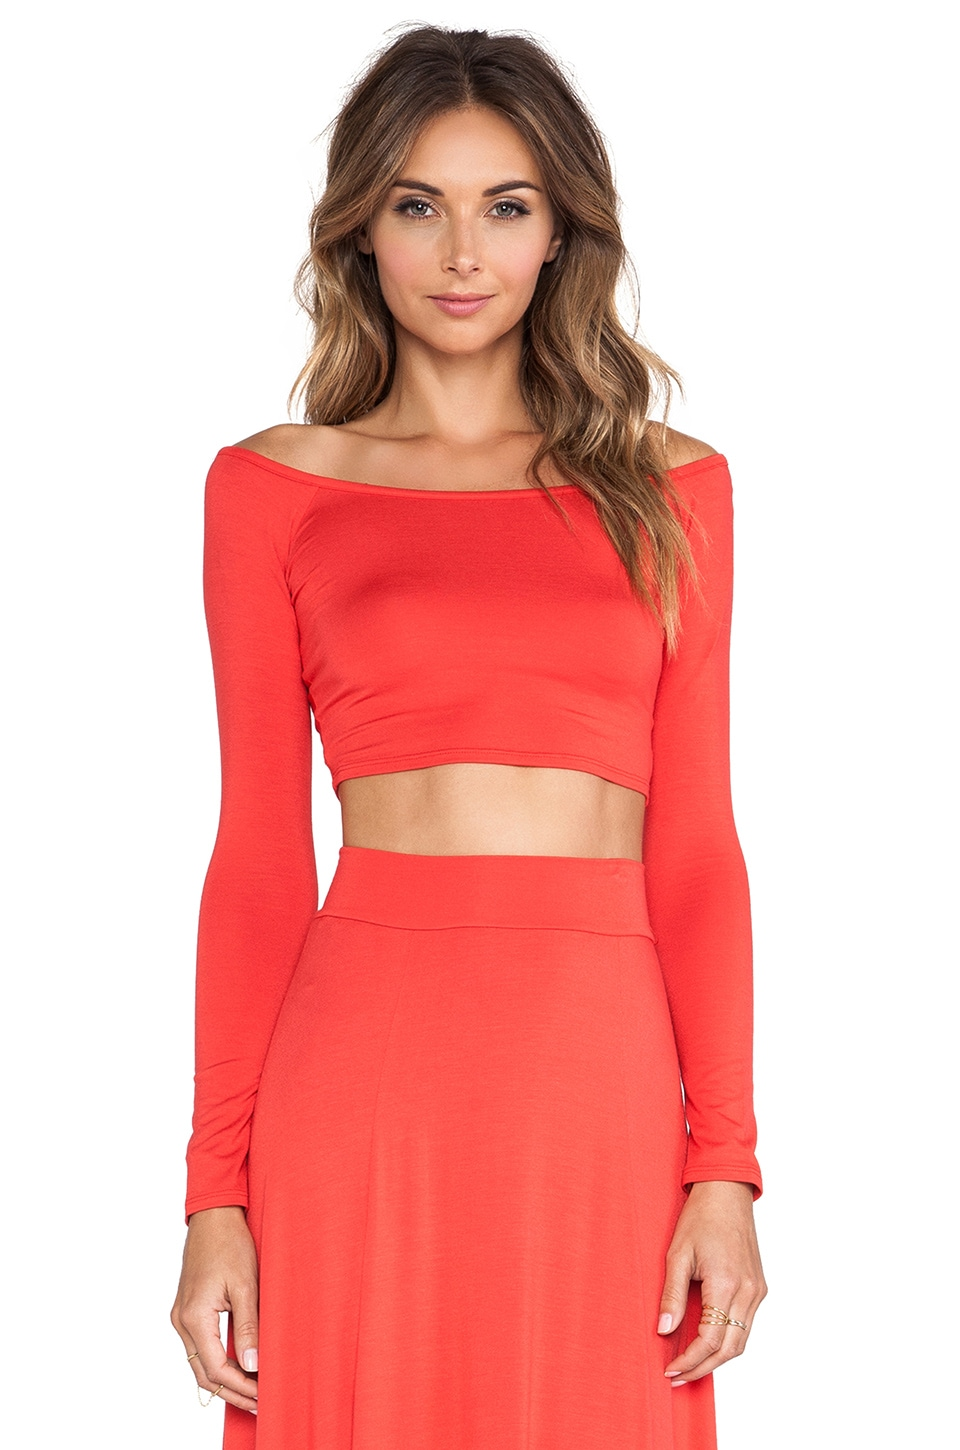 Rachel Pally Cunningham Crop Top in Pom Pom